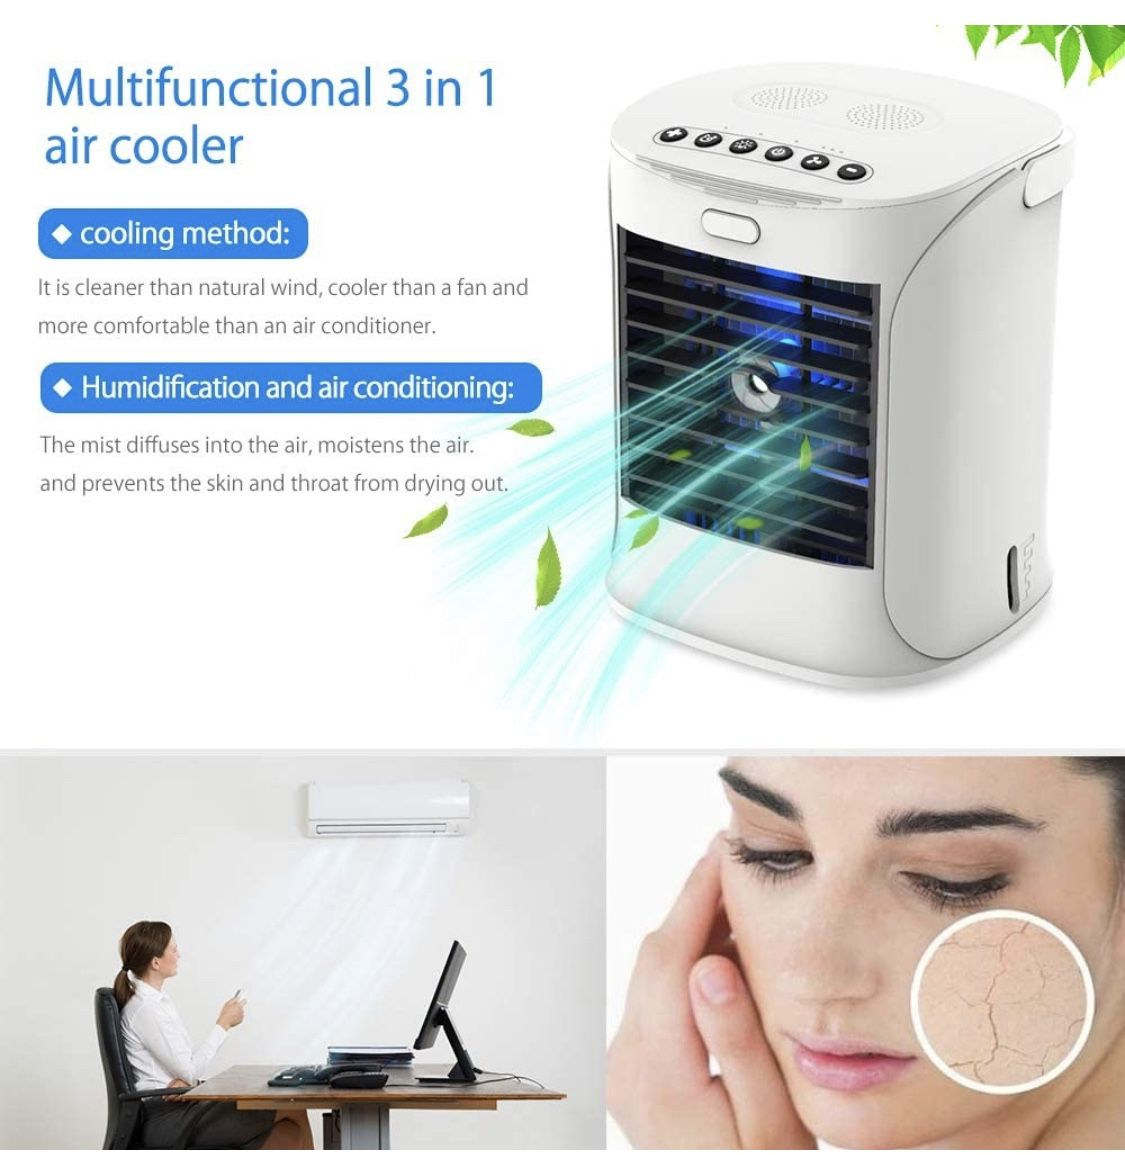 Portable Air Conditioner, Nanssigy Personal Oscillating Mini Air Cooler, Desk Fan Evaporative Cool Mist Humidifiers Air Circulator, Perfect for Bedroo